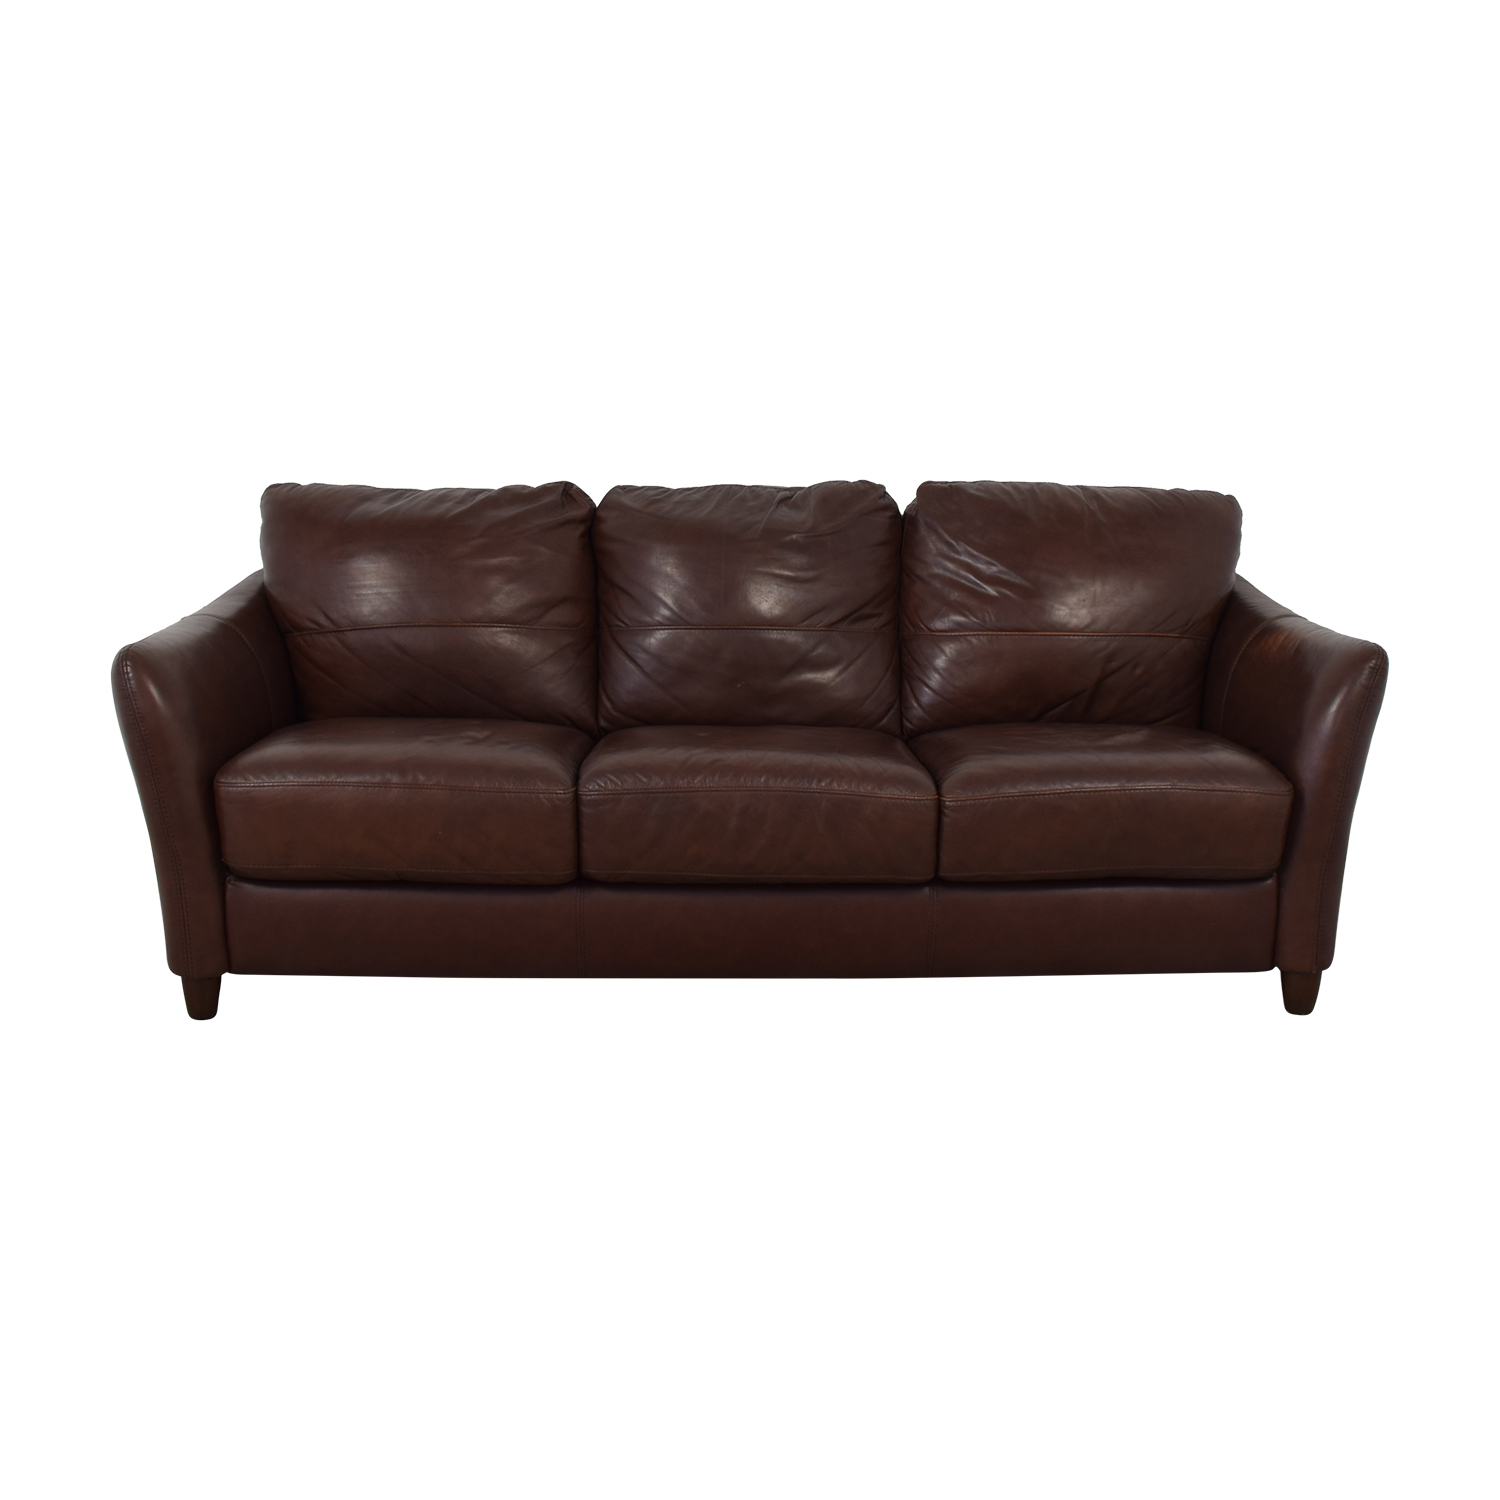 Raymour & Flanigan Raymour & Flanigan Leather Sofa nyc